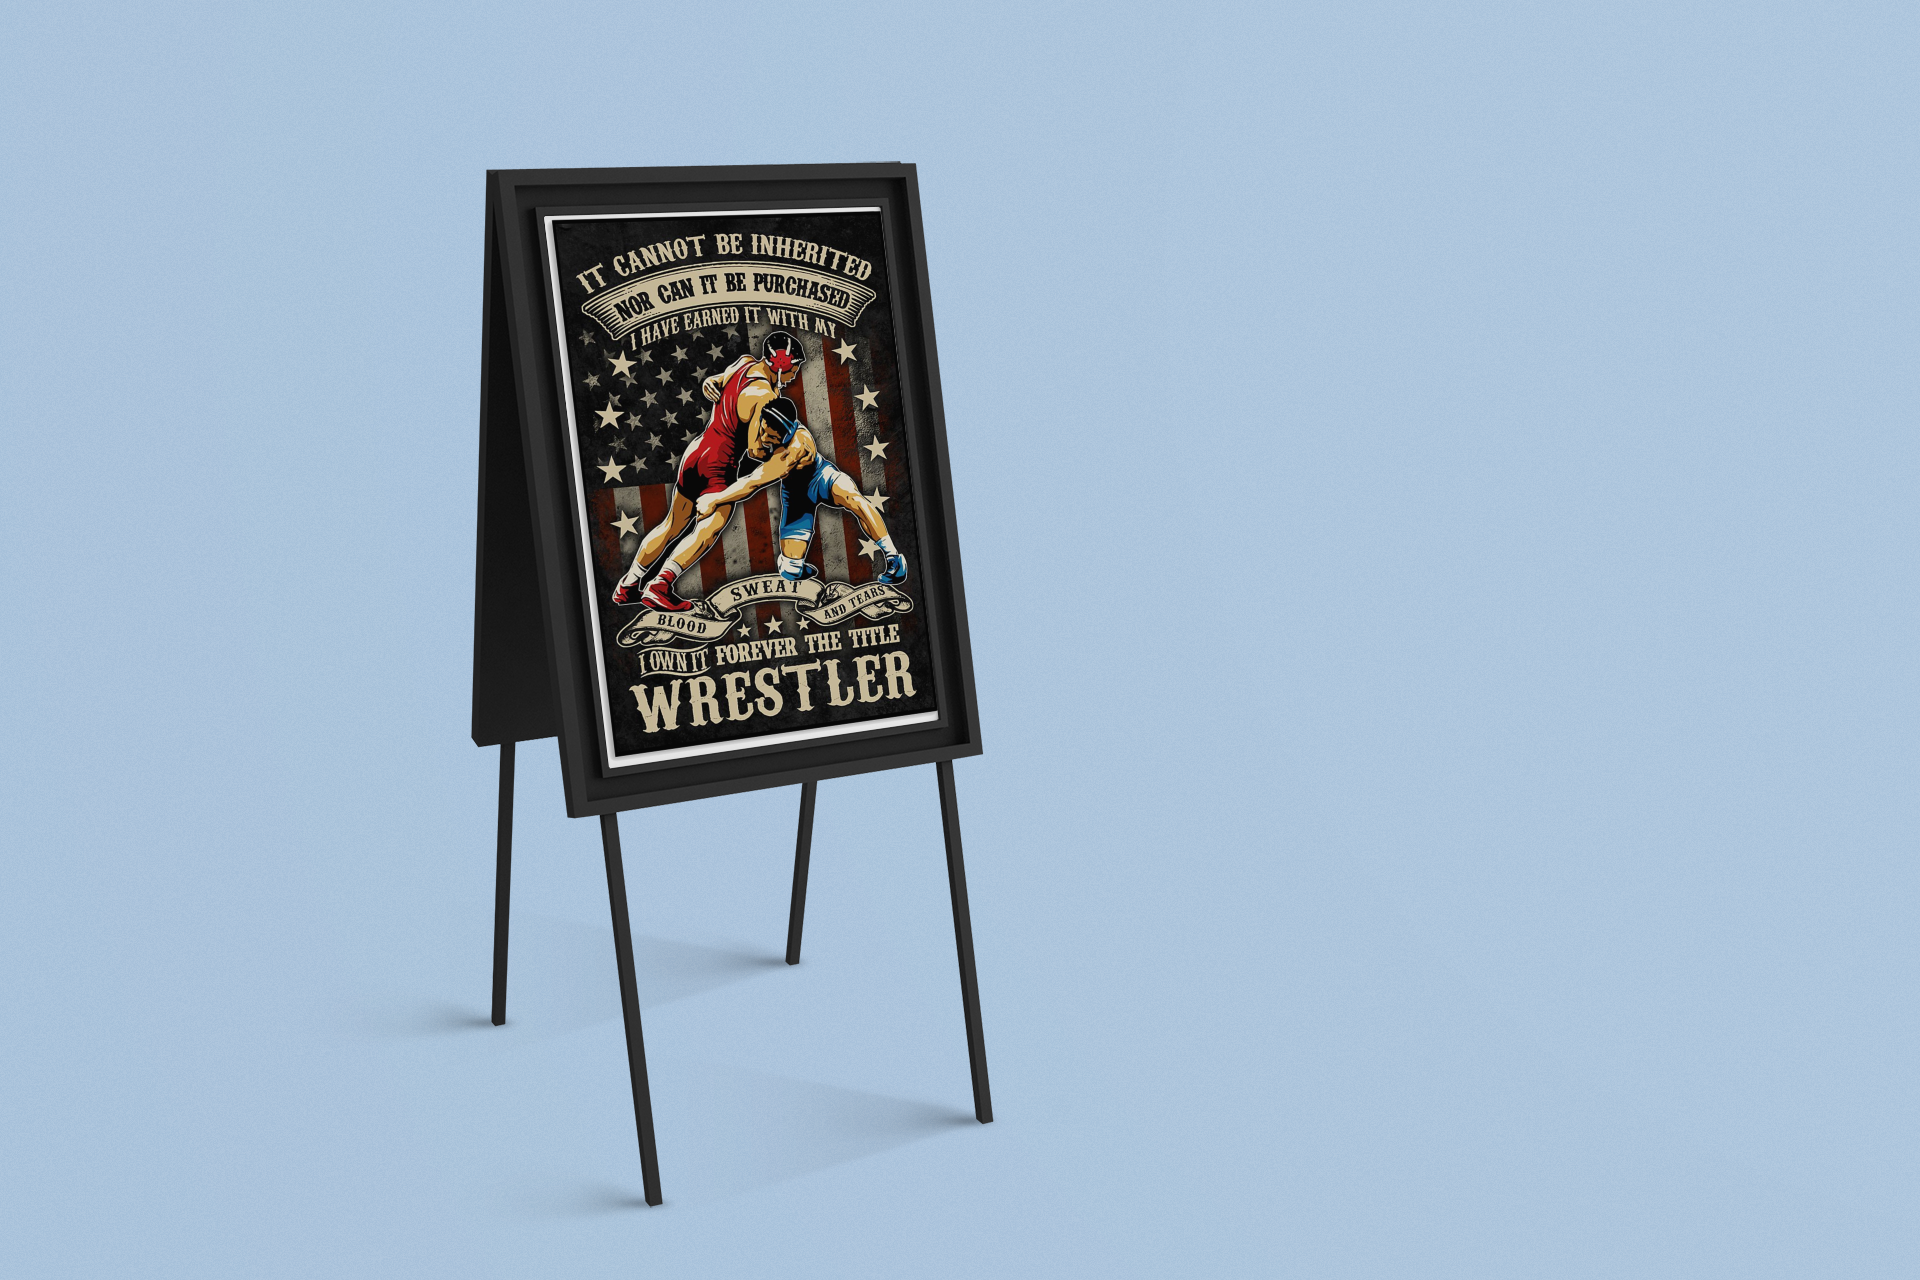 It cannot be inherited I own forever the title wrestler poster